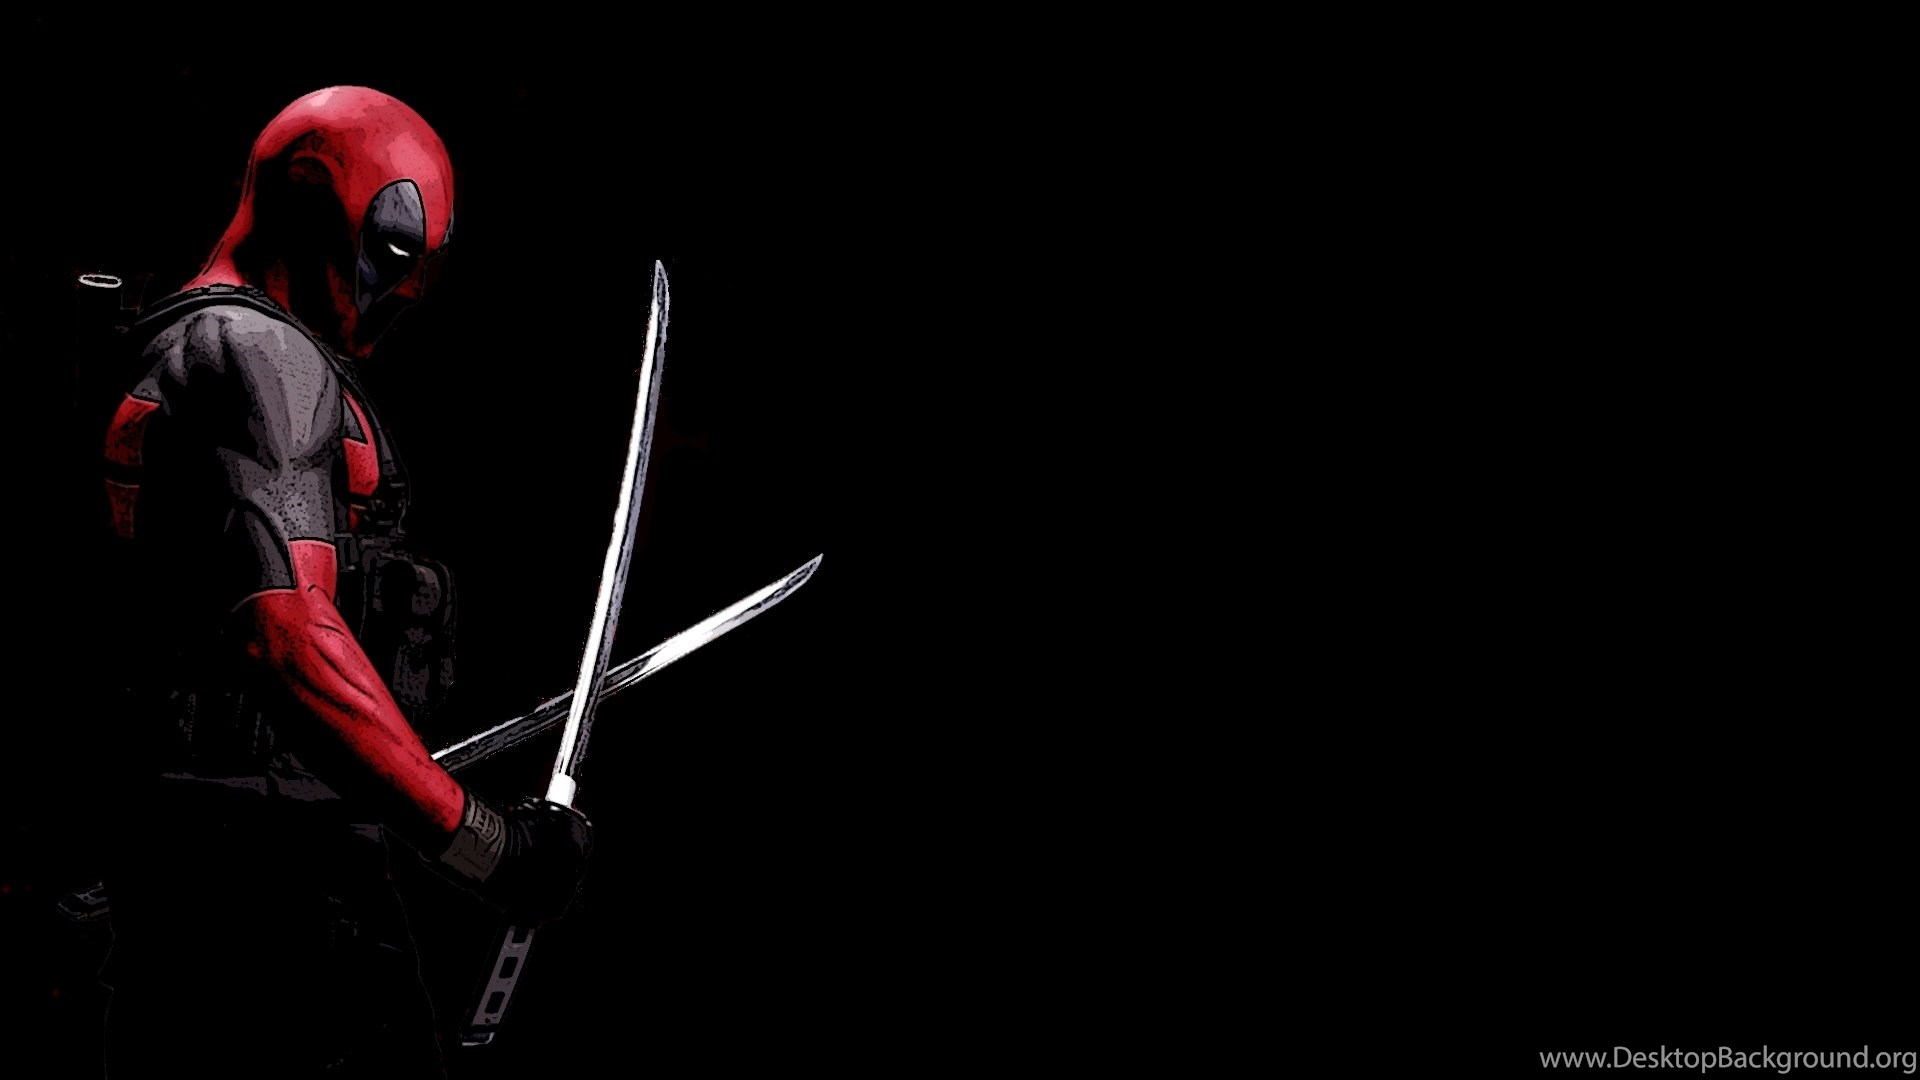 Hd Deadpool Movie Black And Red Wallpapers 1080p Full Size